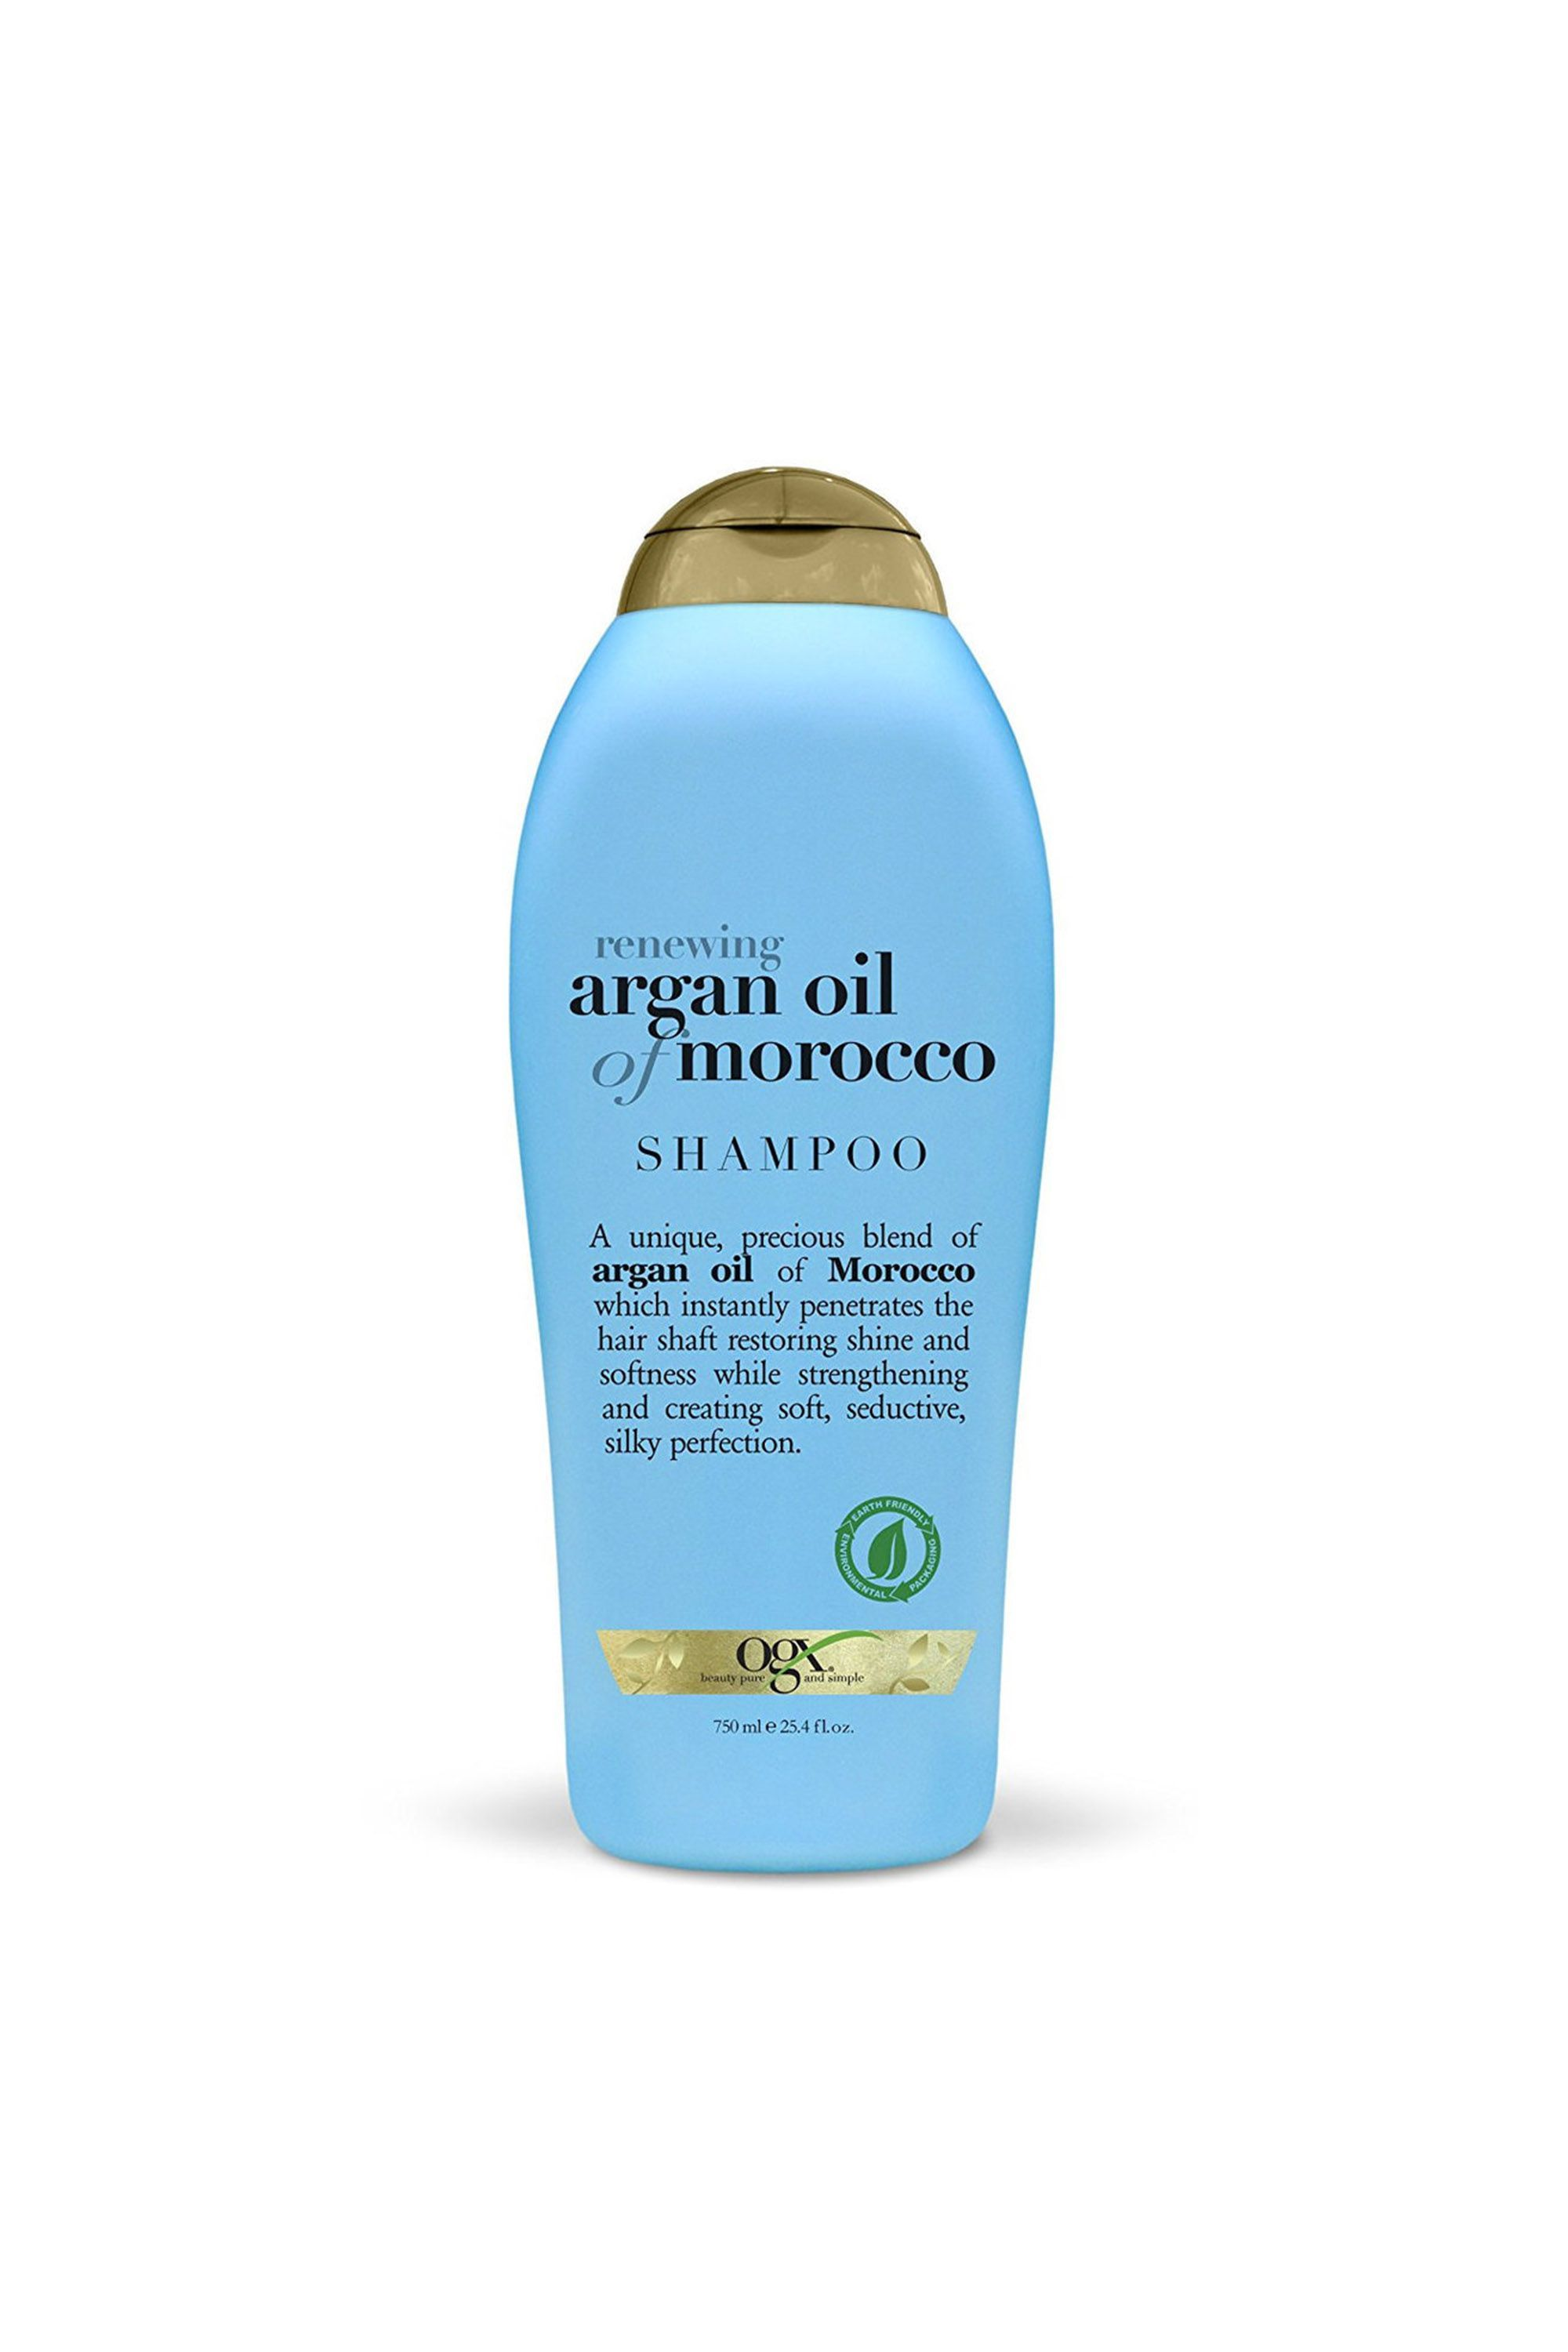 For Dry Hair Renewing Moroccan Argan Oil Shampoo OGX amazon.com $13.99 $9.84 (30% off) SHOP NOW OGX's Argan Oil of Morocco shampoo might be the secret to shinier and softer hair. The sulfate-free formula intensely hydrates and locks in moisture with the help of silk proteins.